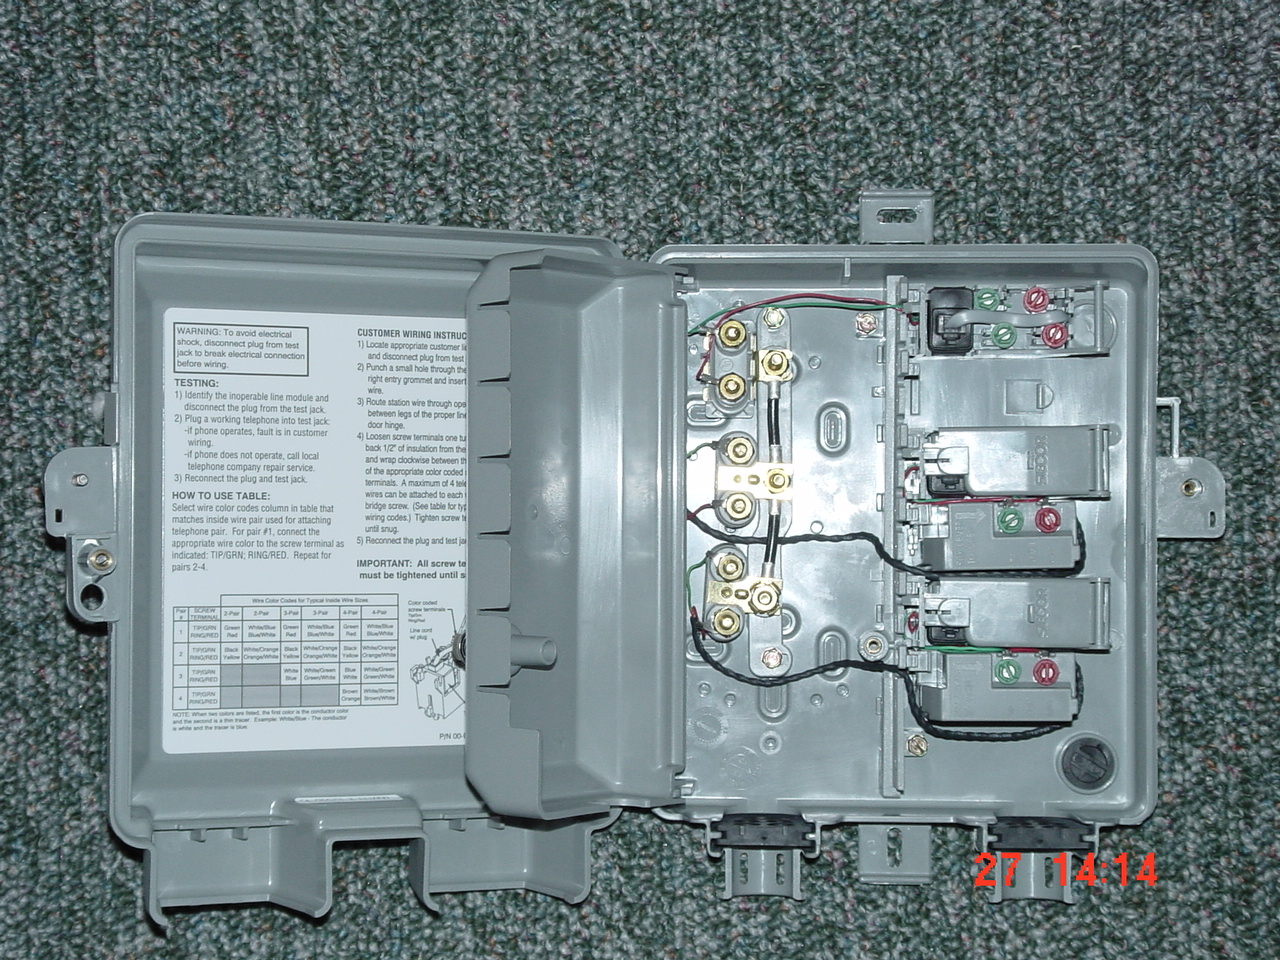 telephone network interface box wiring diagram get free image about wiring diagram